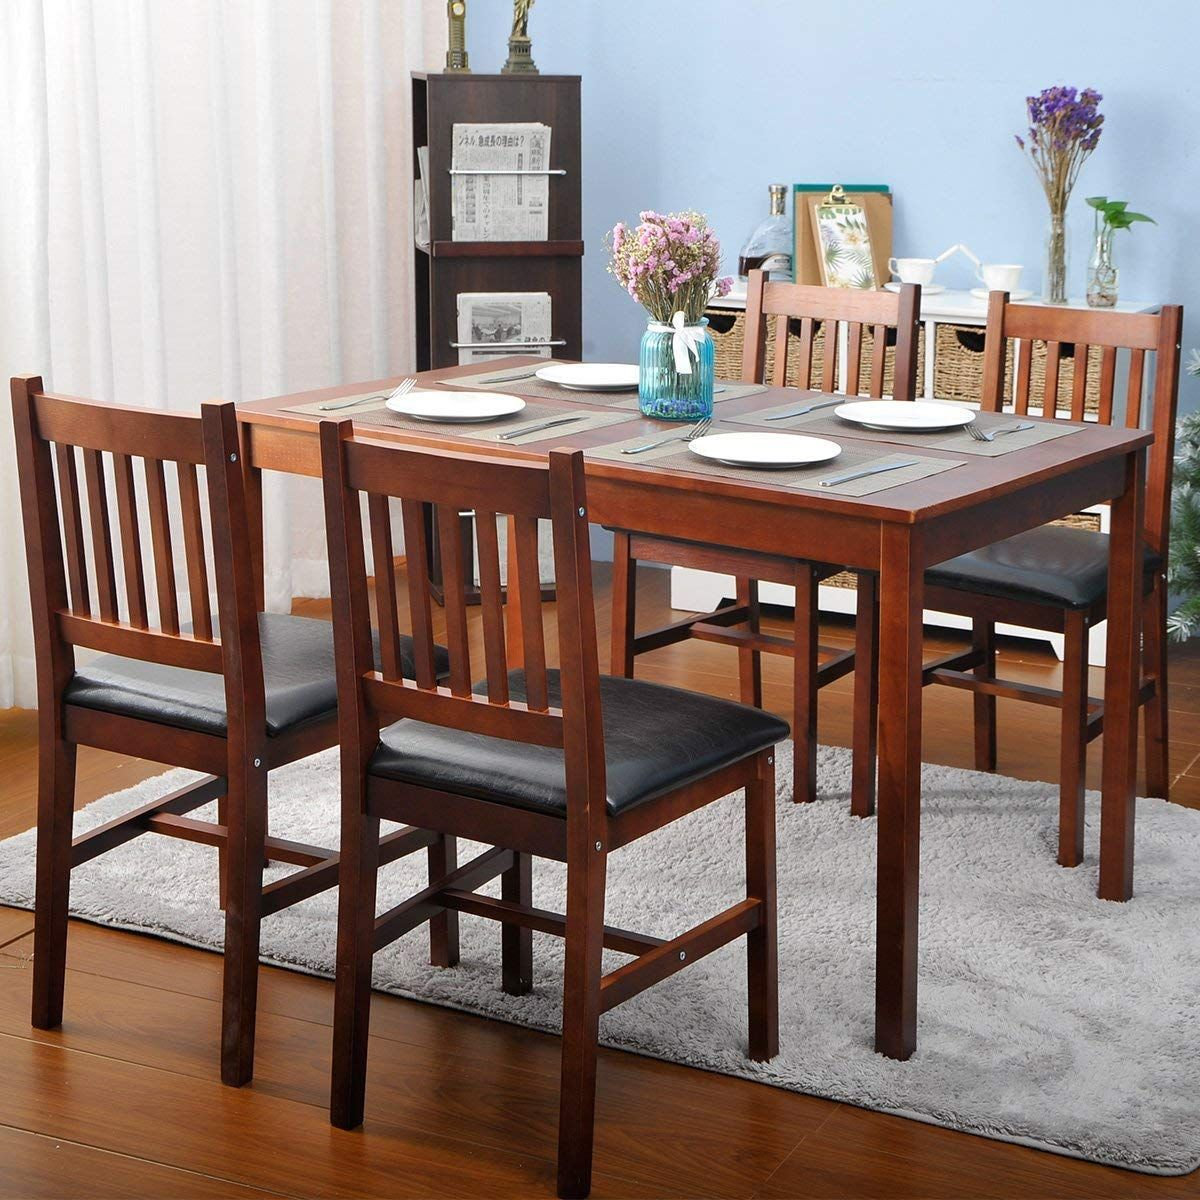 5 Piece Wood Dining Table Set 4 Person